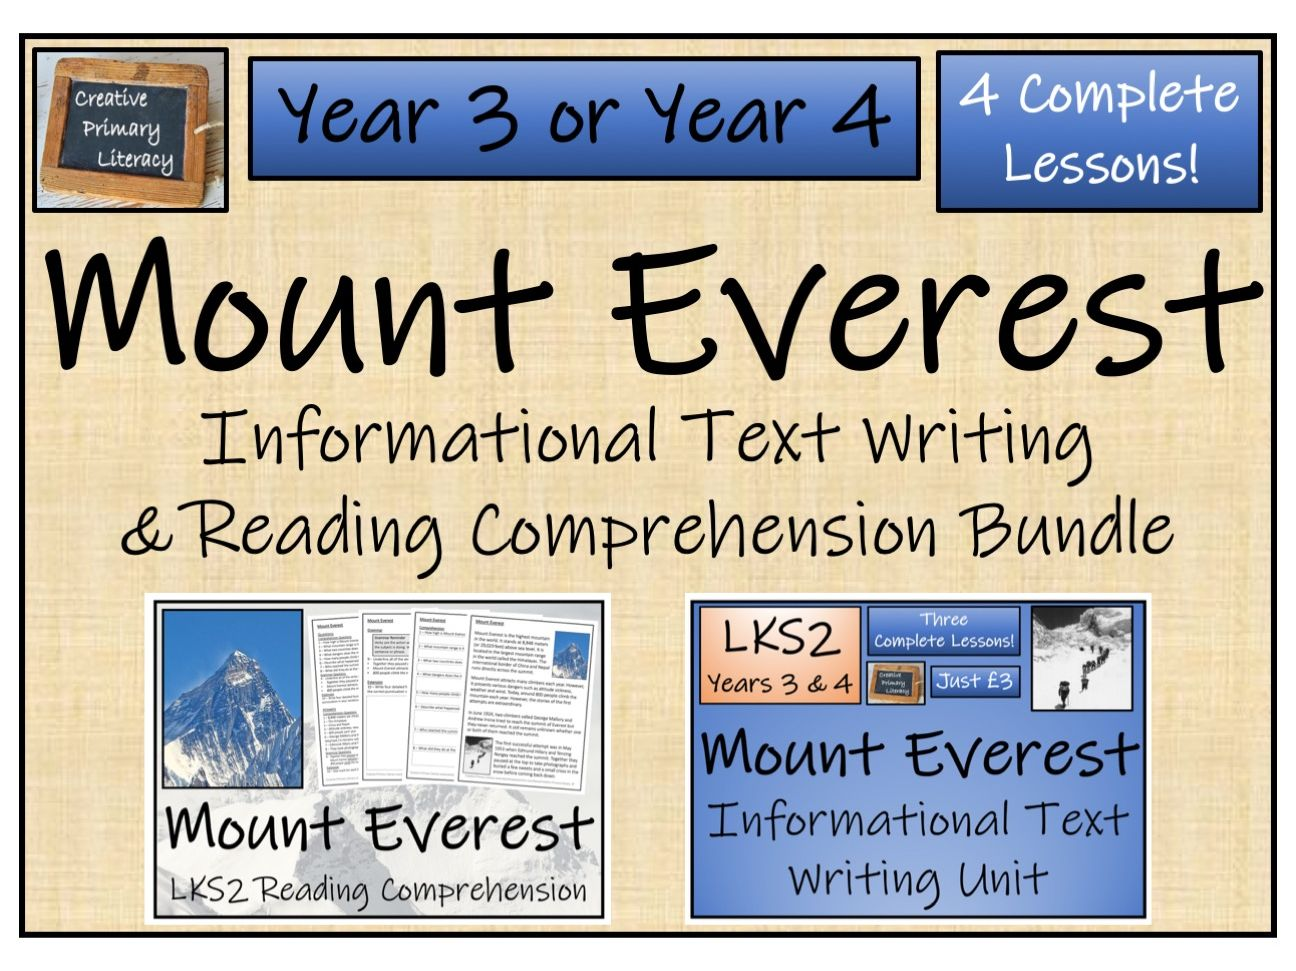 LKS2 - Mount Everest Reading Comprehension & Informational Text Writing Bundle